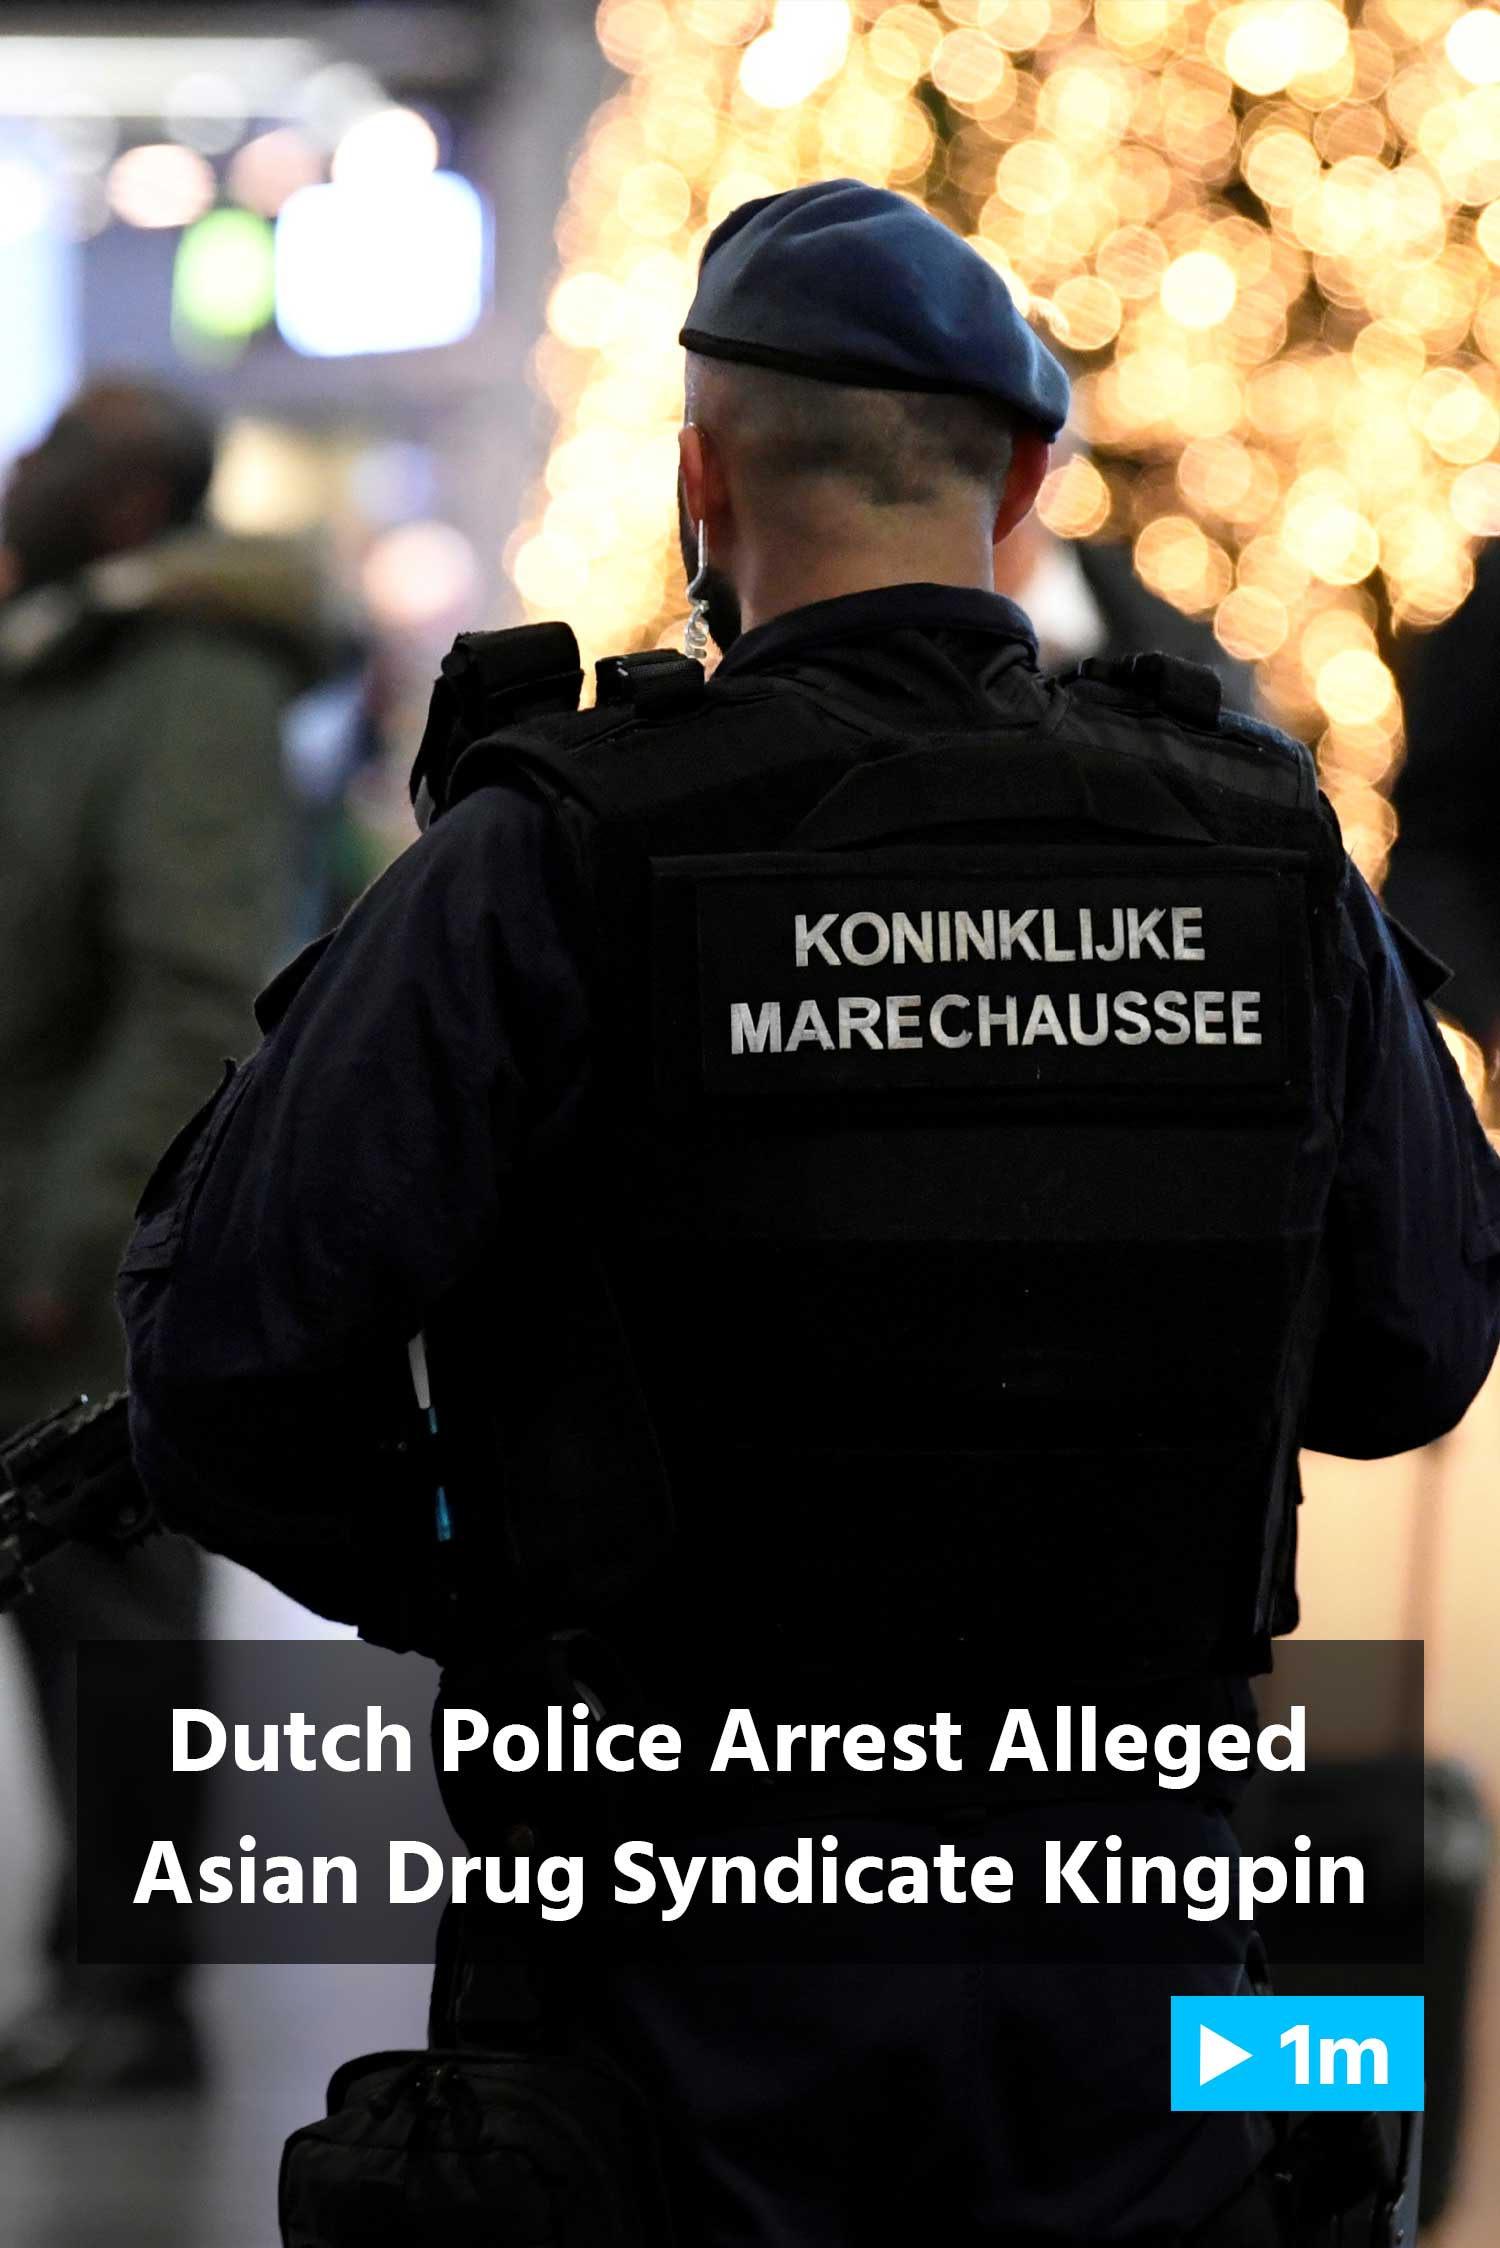 Reuter's Report: Dutch police arrest alleged Asian drug syndicate kingpin